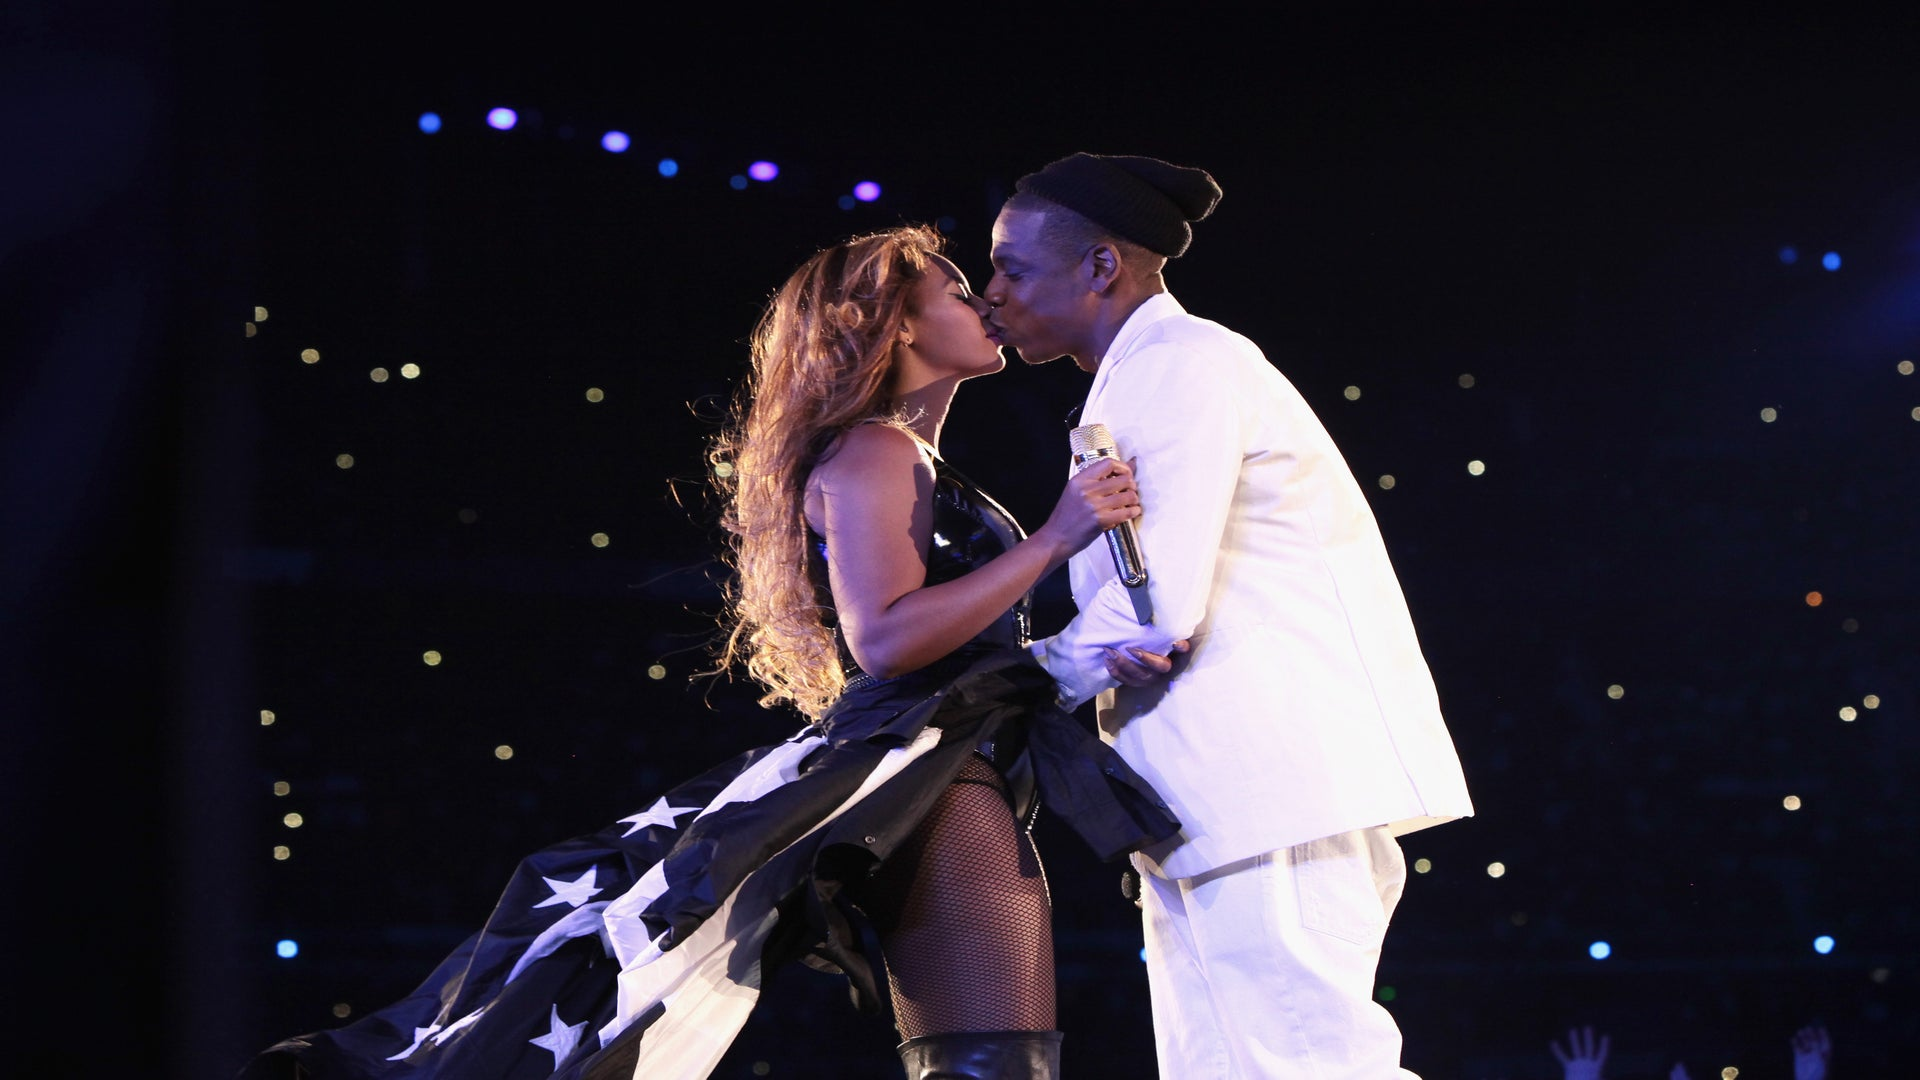 Beyoncé Supports JAY-Z at Tidal's Hurricane Benefit Concert In Brooklyn